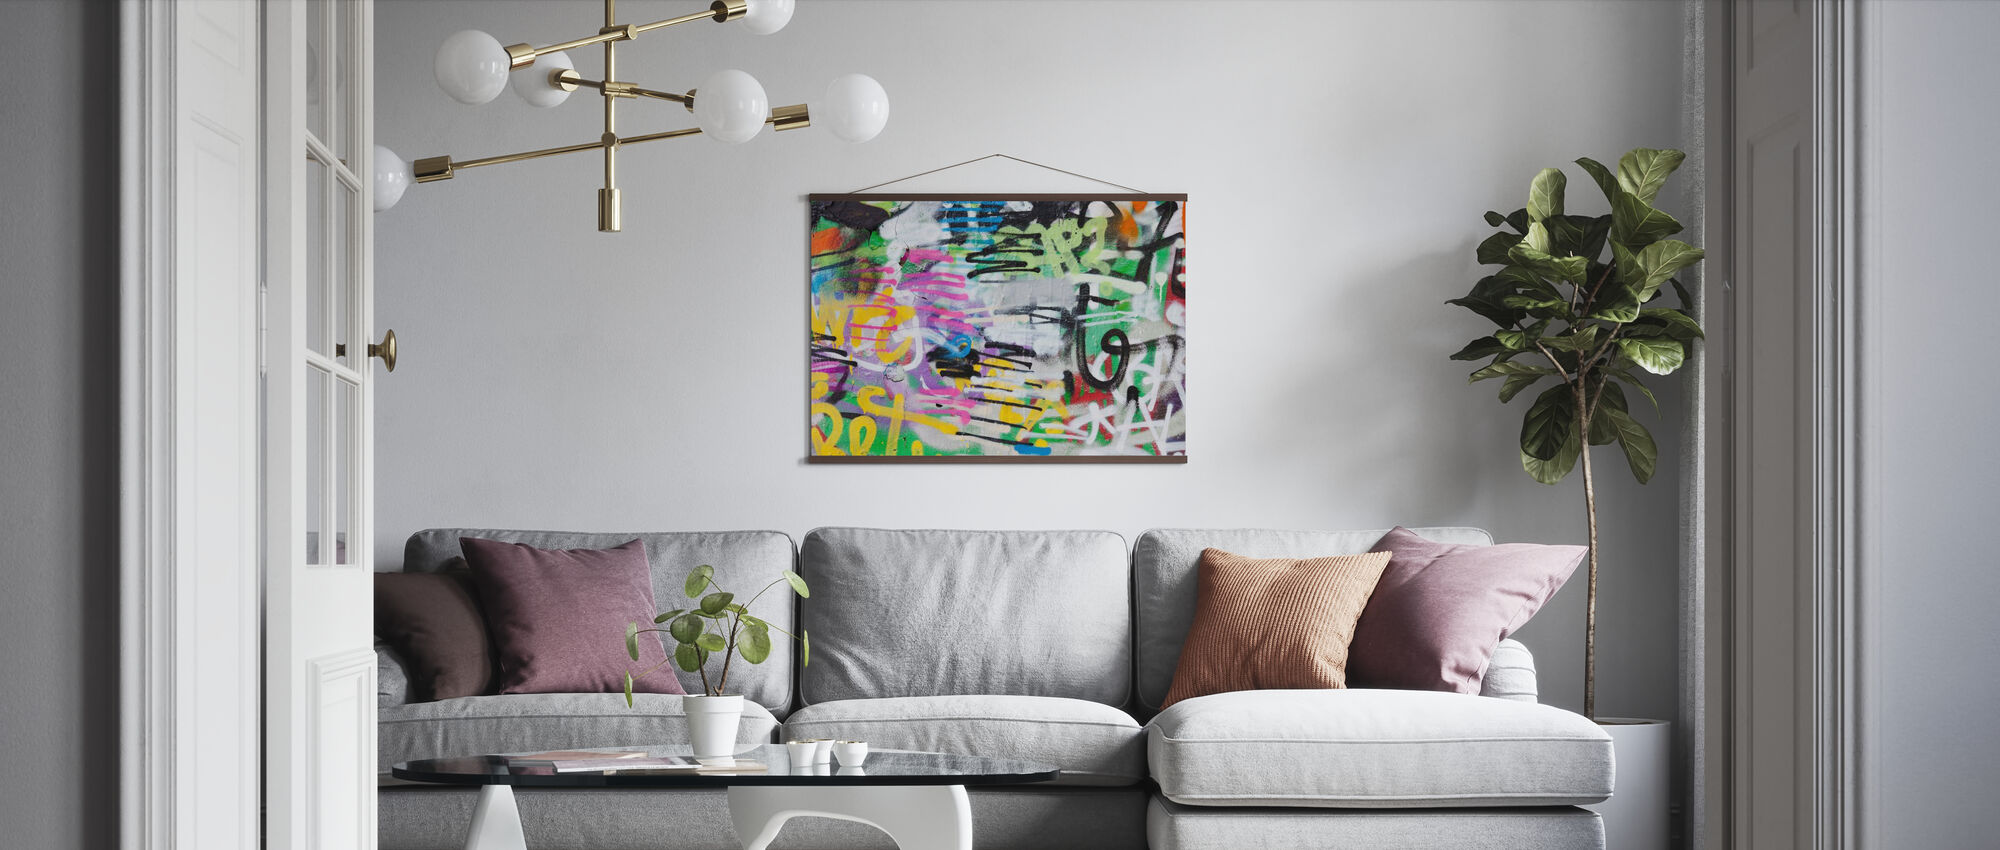 Painted Graffiti Wall - Poster - Living Room